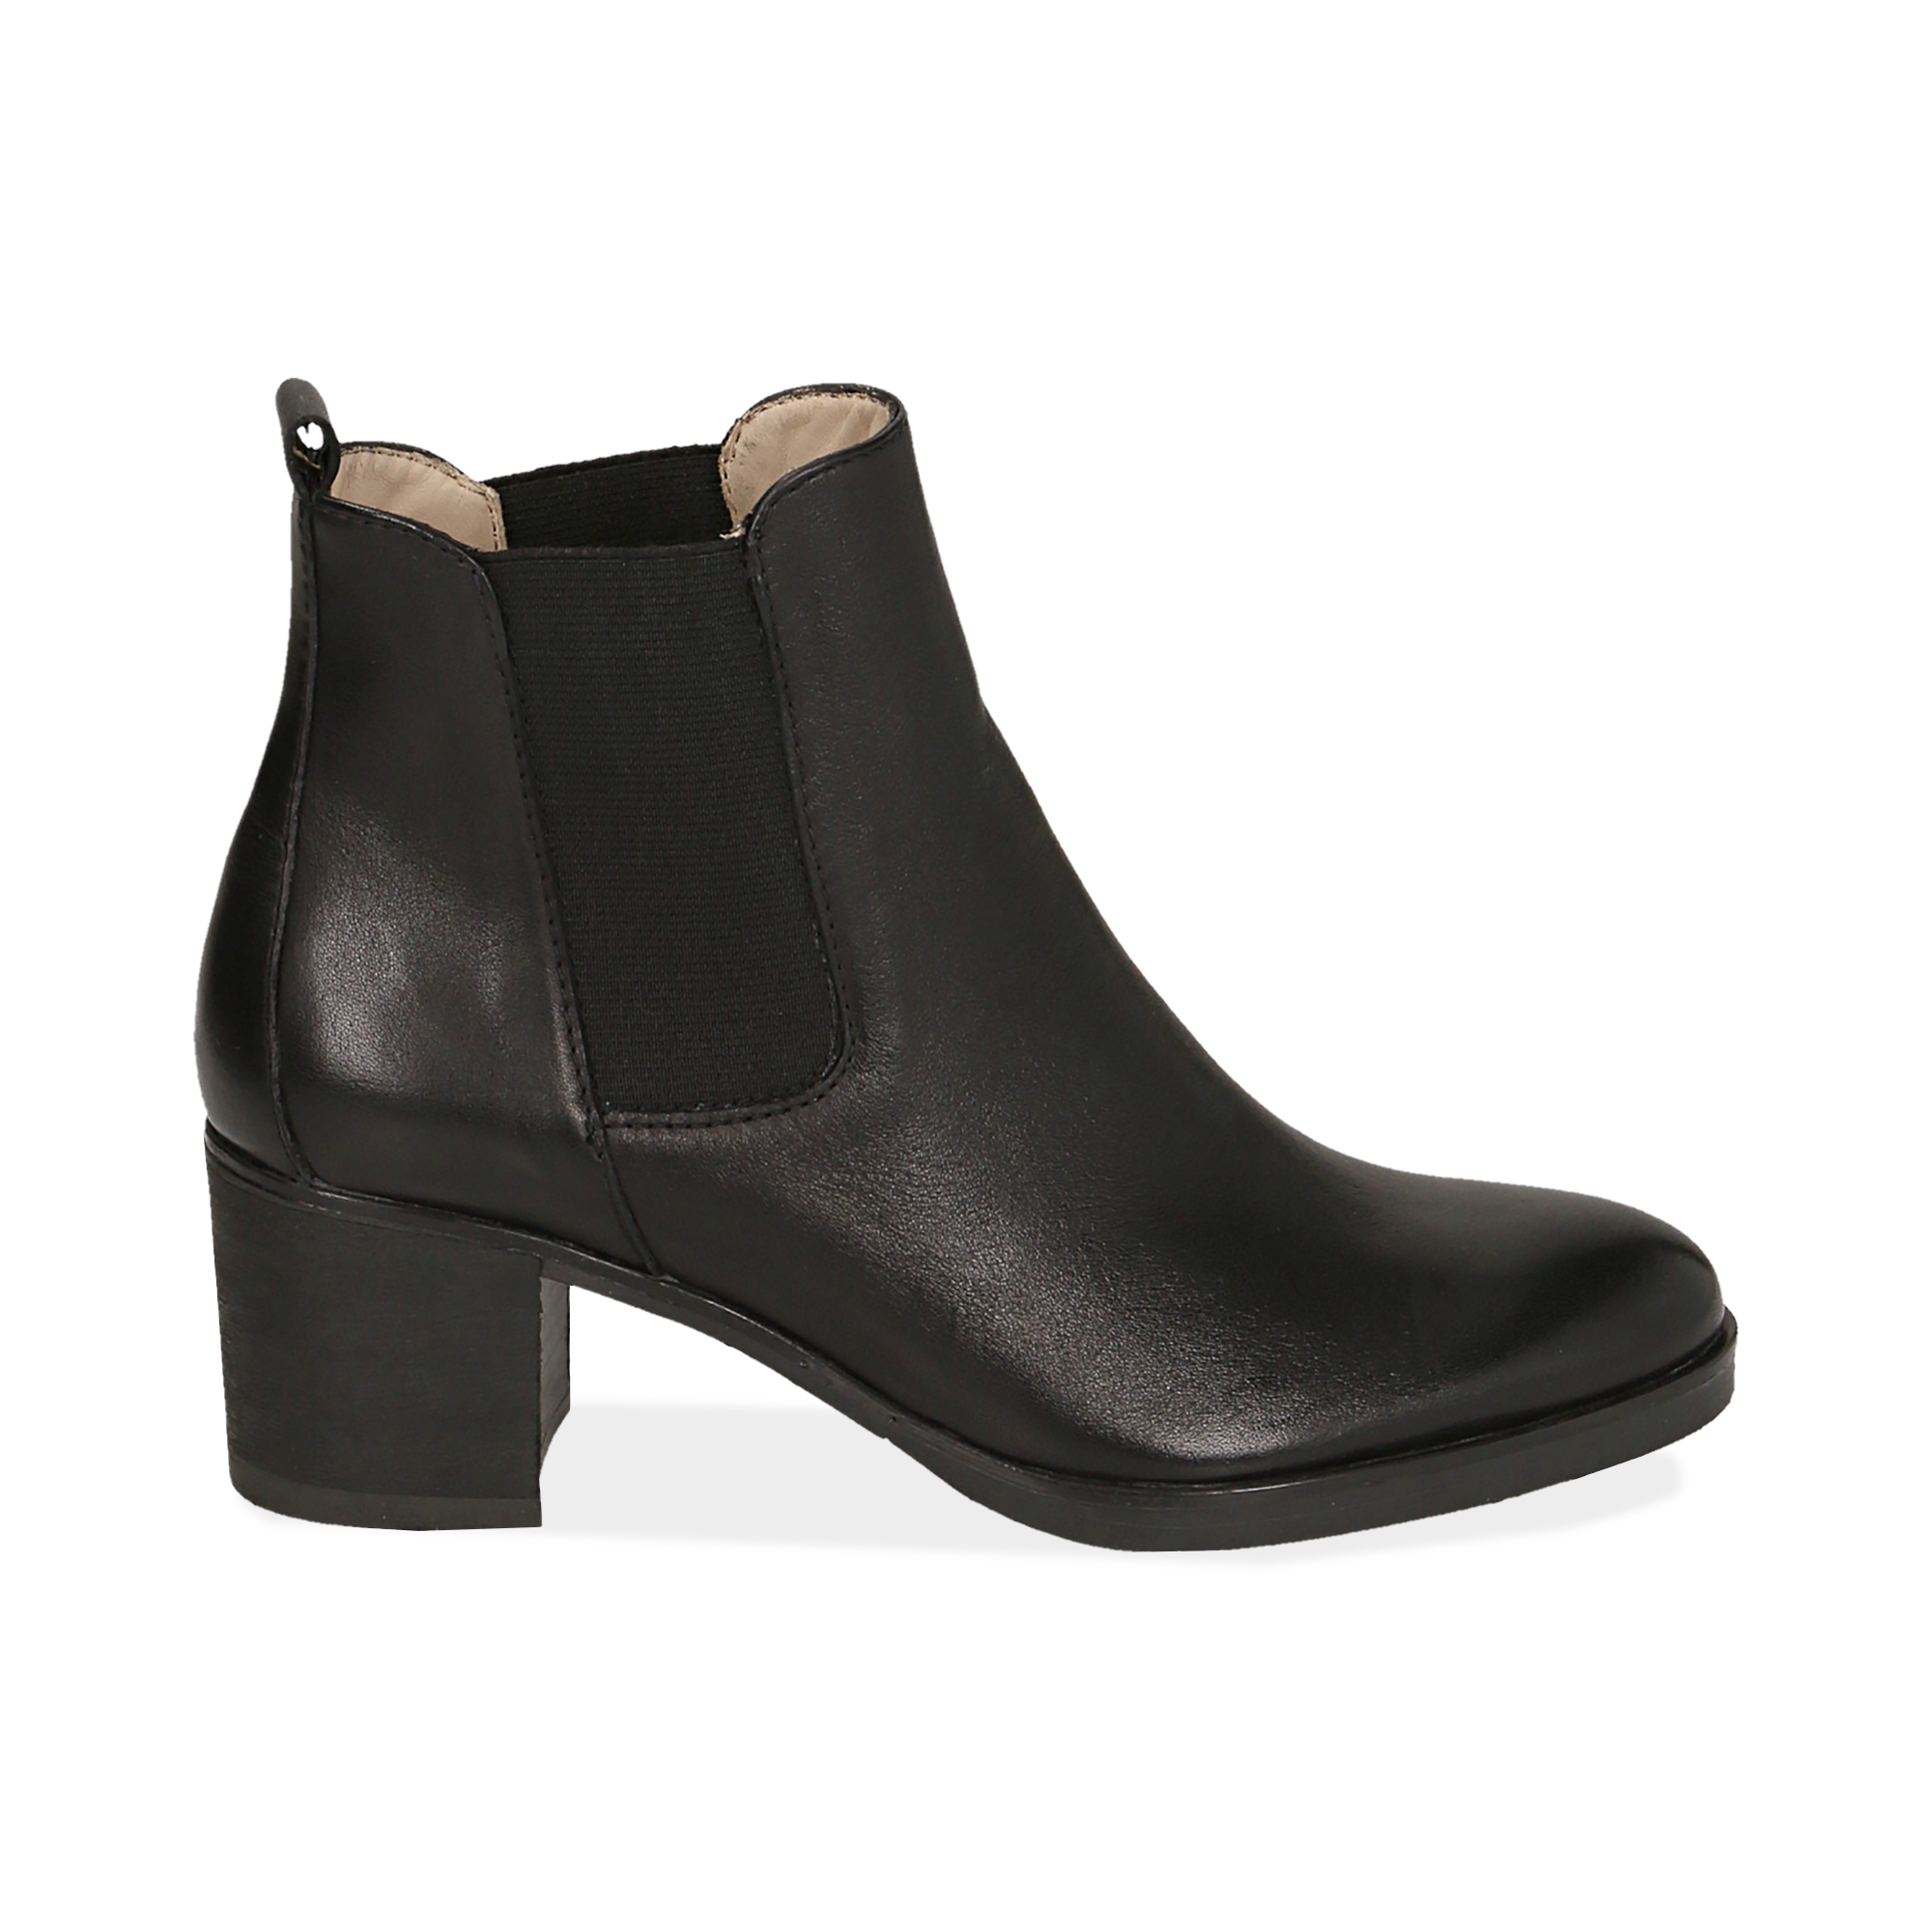 Chelsea boots neri in pelle, tacco 6 cm